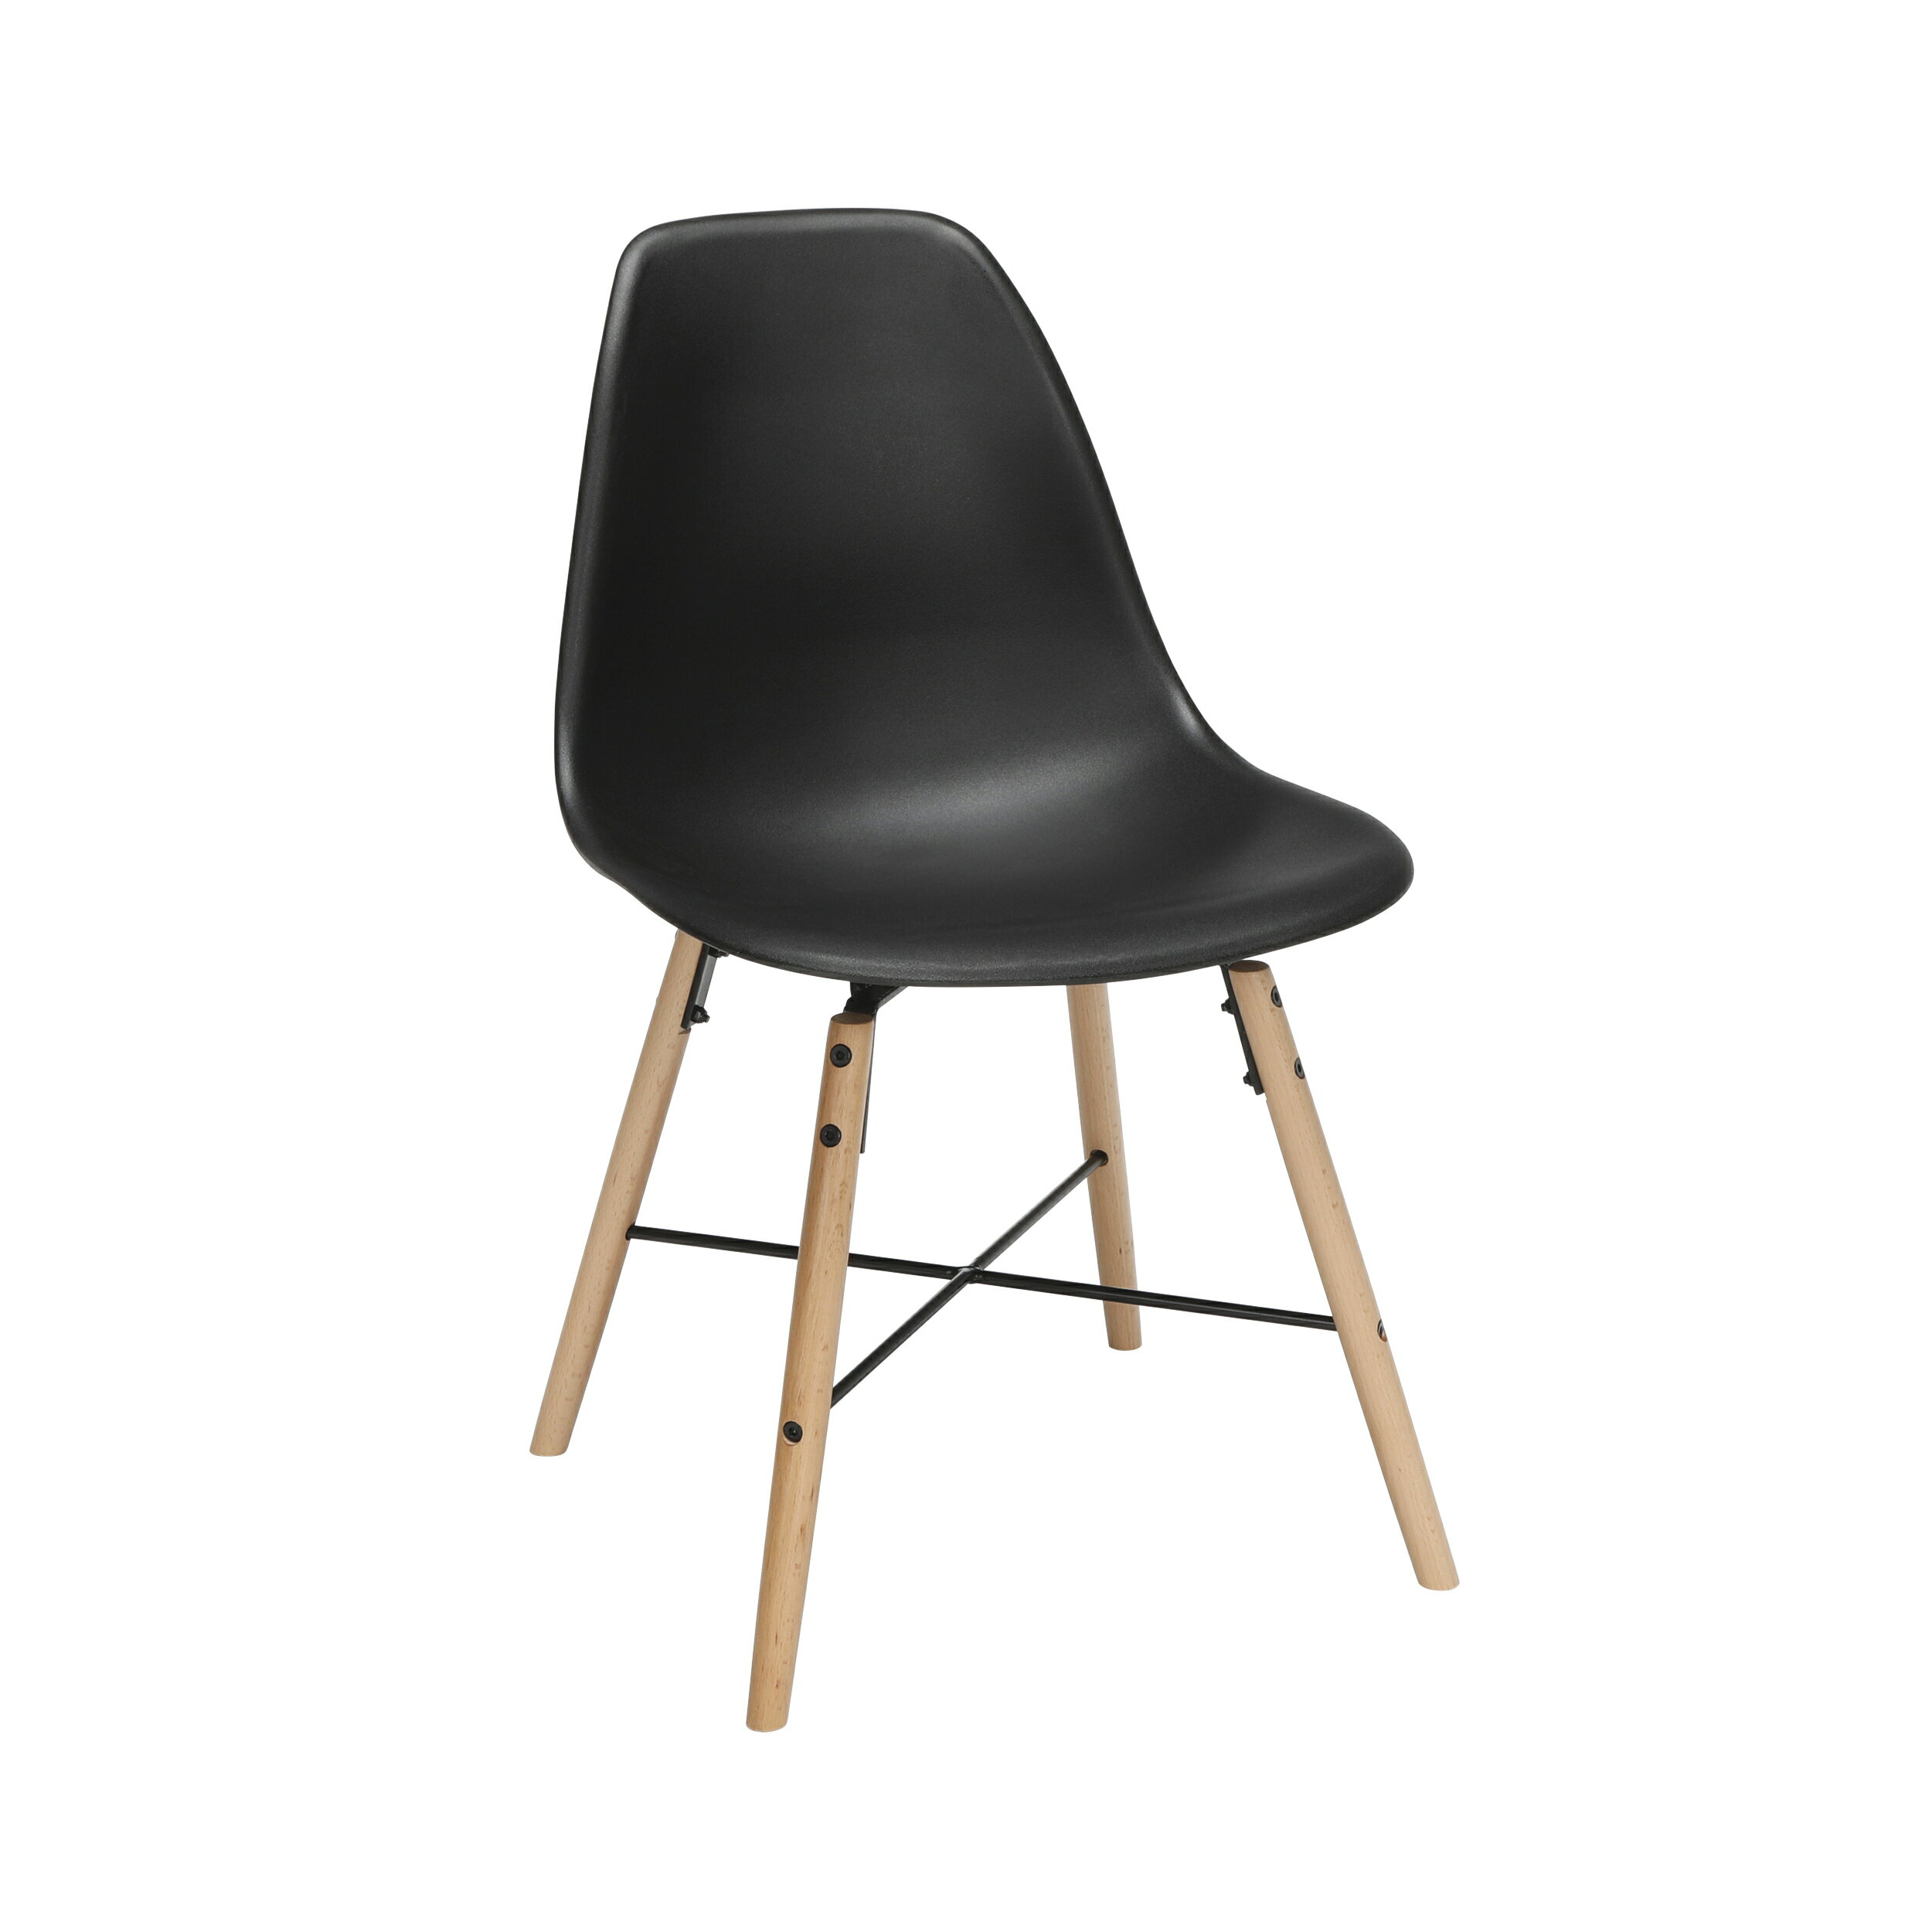 Astounding Ofm 161 Collection Mid Century 4 Pack Modern 18 Plastic Molded Dining Chairs Beechwood Legs With Wire Accent In Black 161 P18A Blk 4 Alphanode Cool Chair Designs And Ideas Alphanodeonline